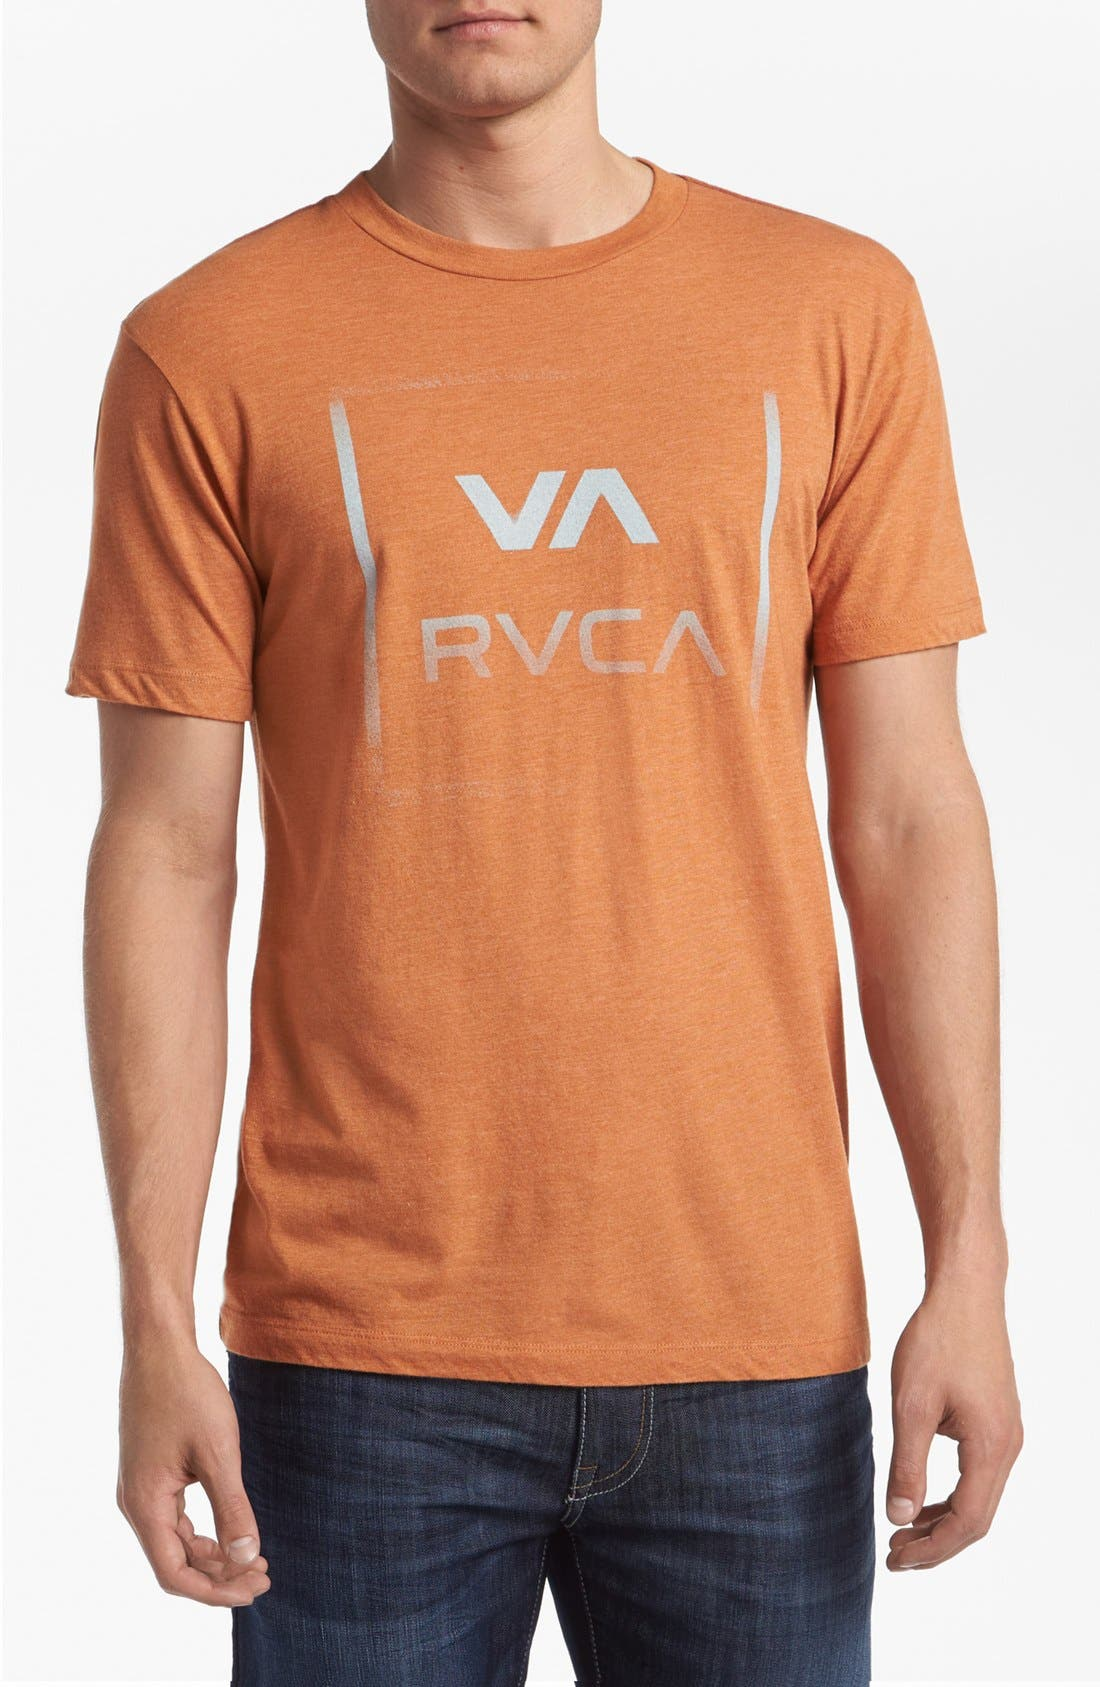 Alternate Image 1 Selected - RVCA 'VA All The Way' T-Shirt